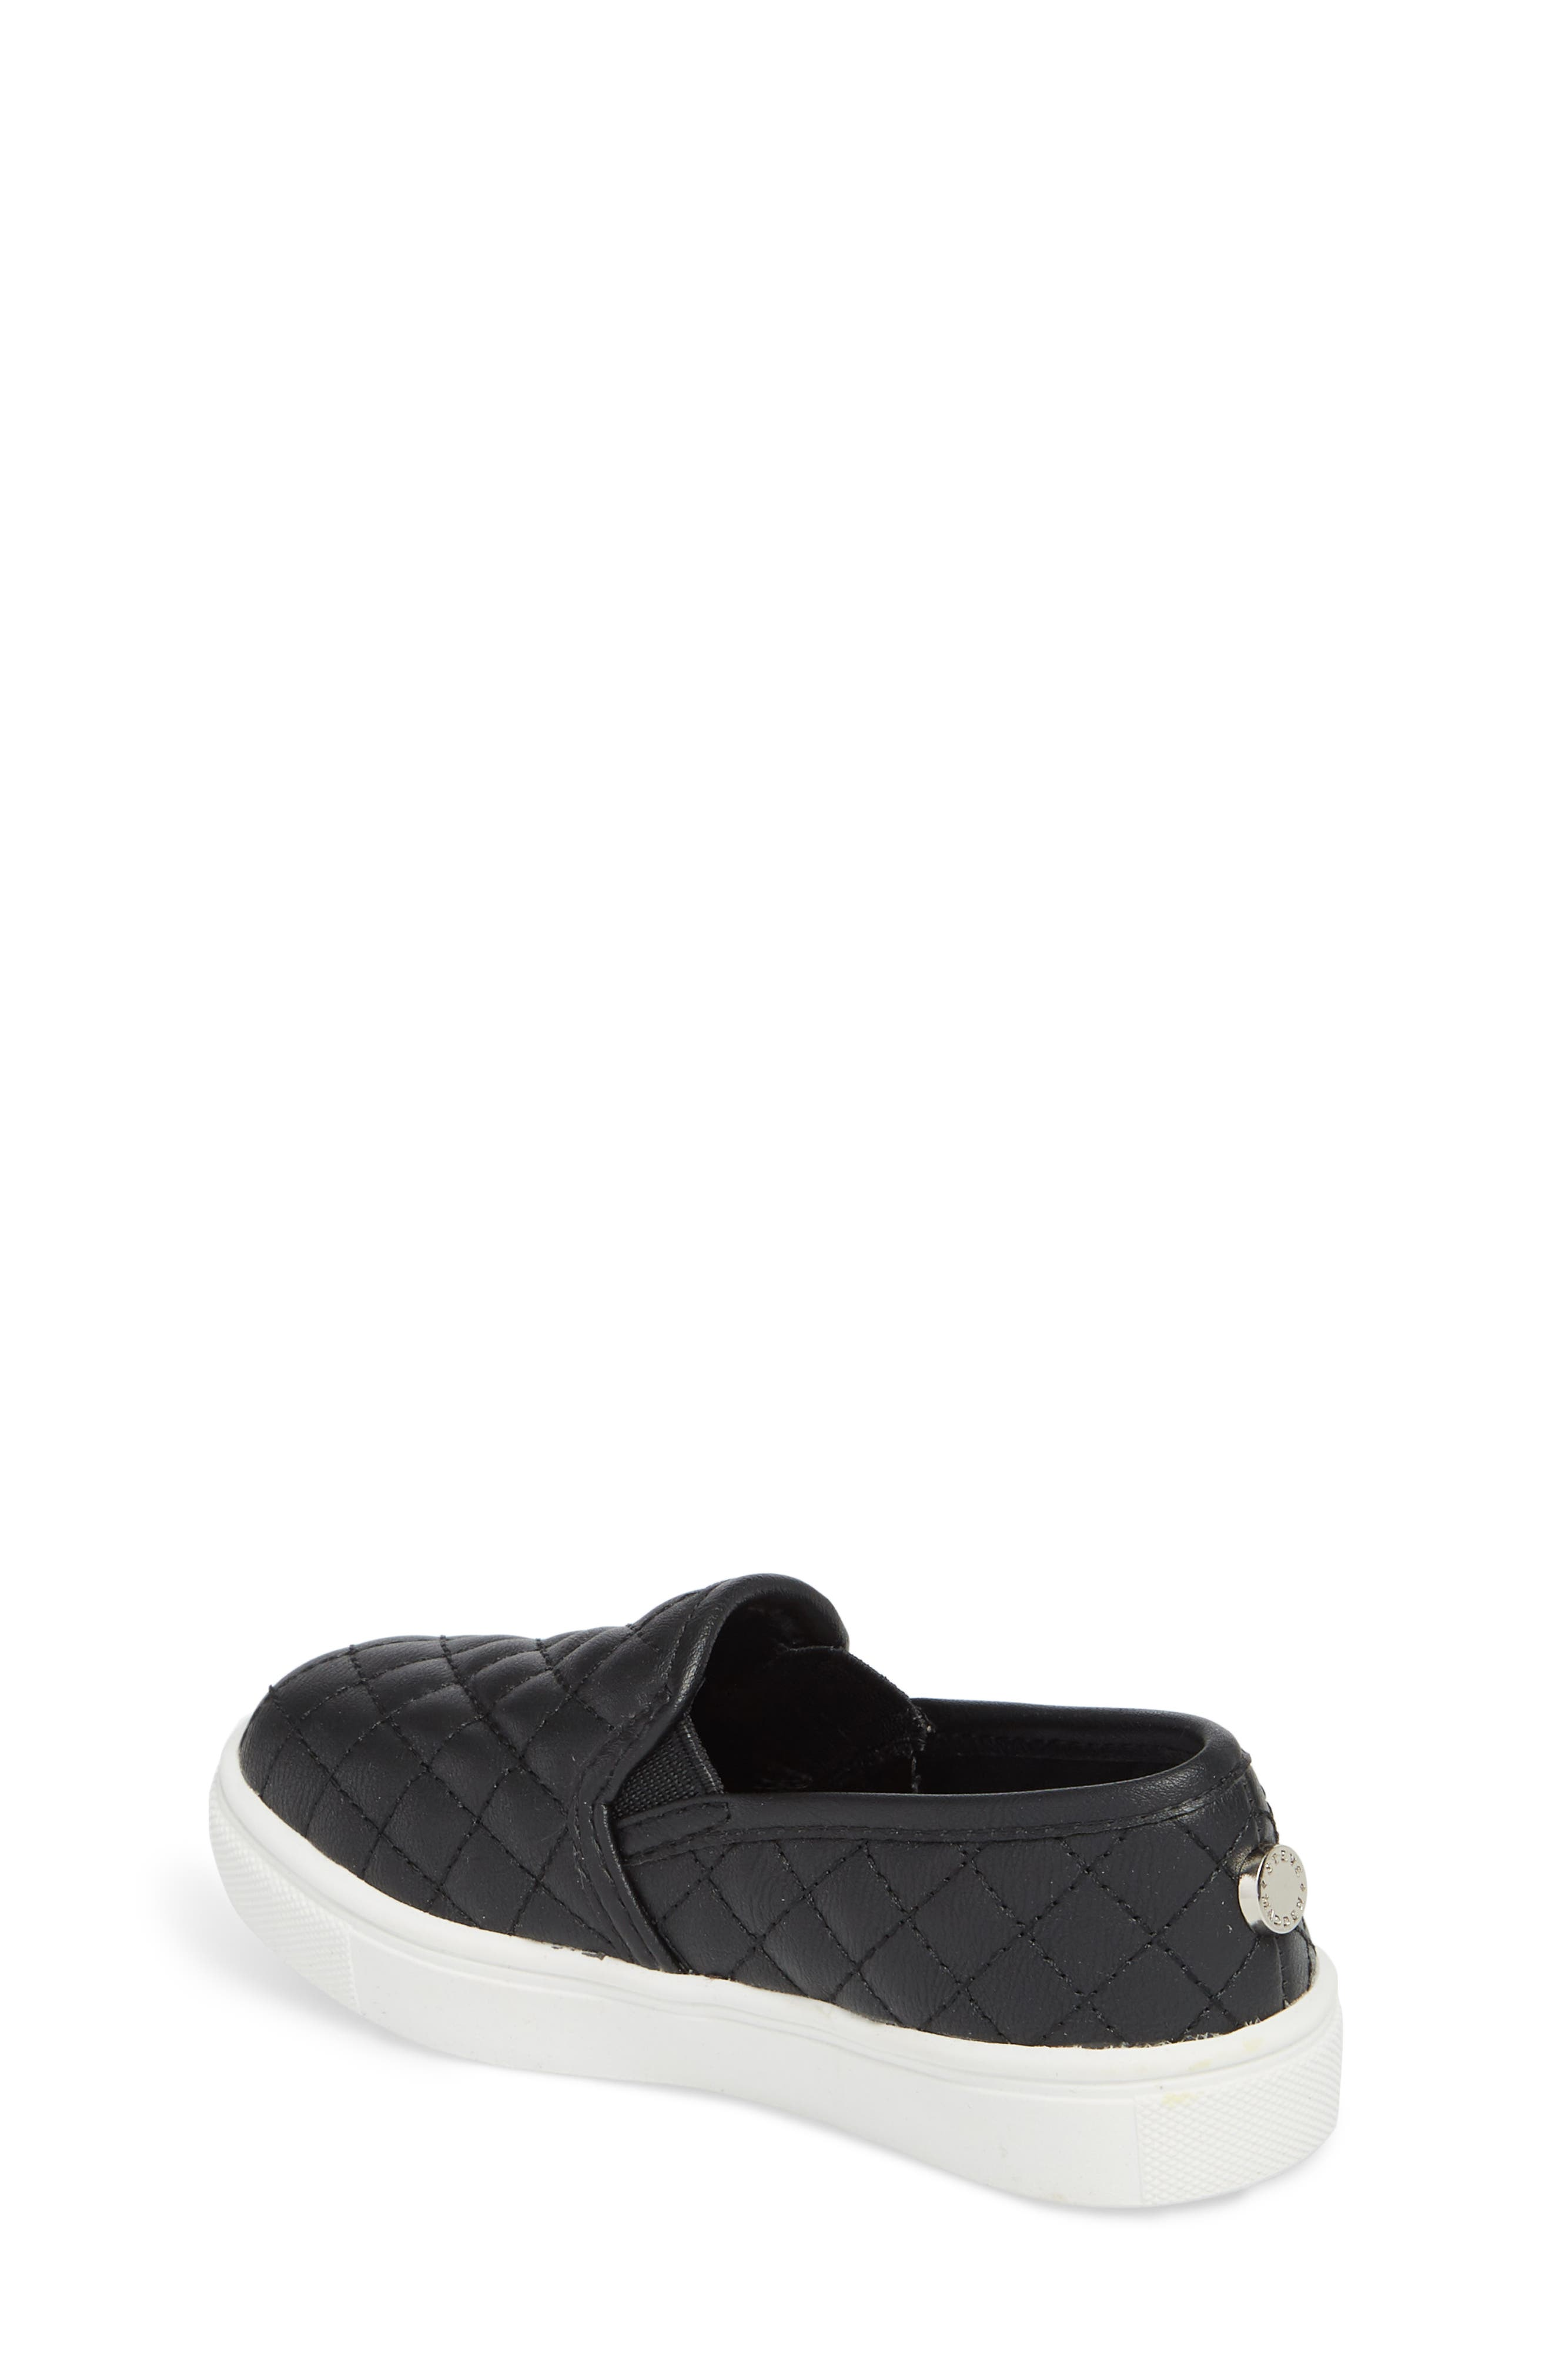 Tecntrc Quilted Slip-On Sneaker,                             Alternate thumbnail 2, color,                             Black